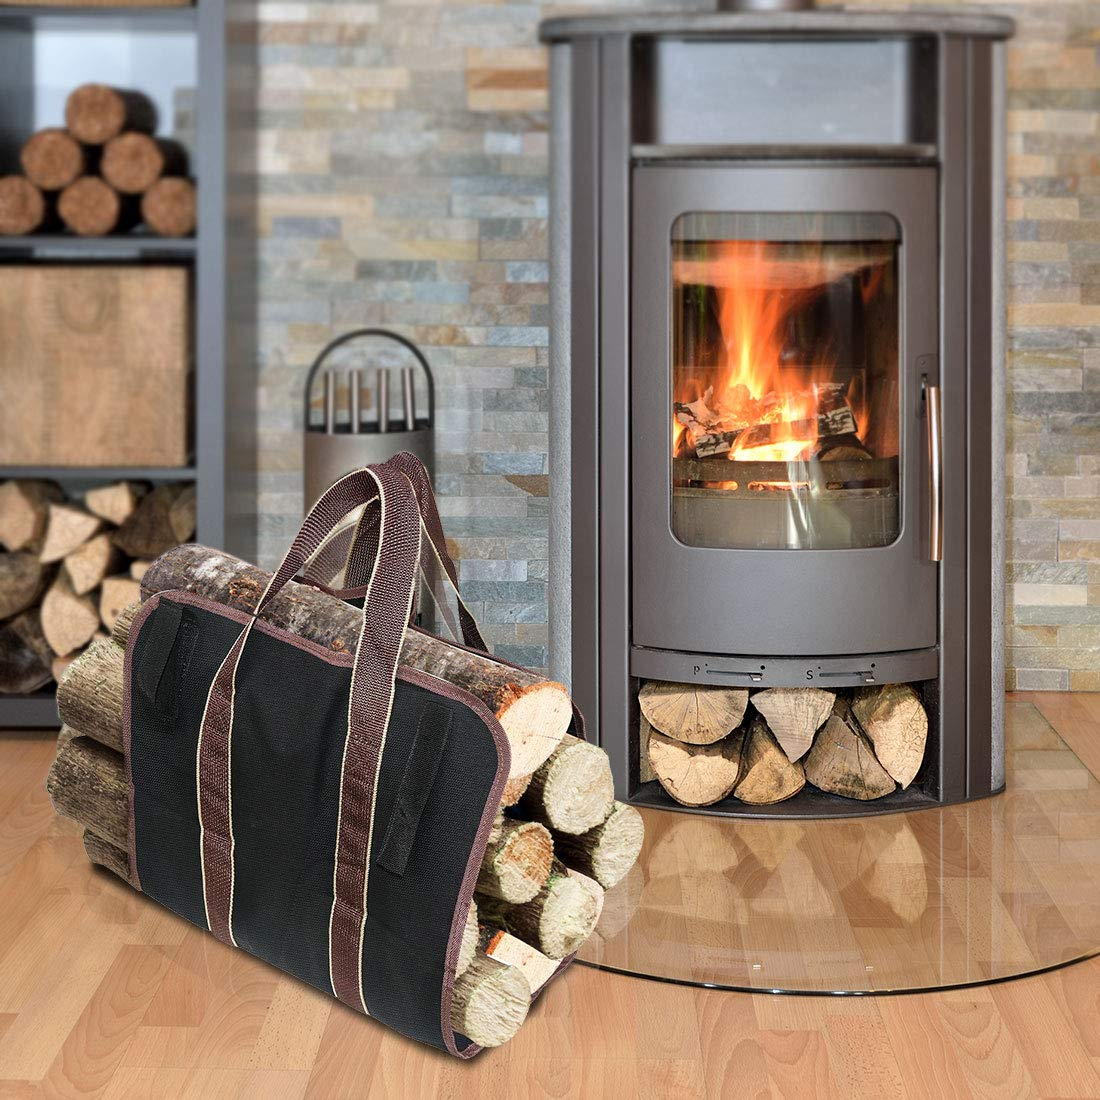 LingsFire Log Carrier Firewood Tote Wood Carrying Bag Fireplace 16oz Canvas Wood Tote Bag Extra Large Firewood Holder with Handles Fireplace Wood Stove Accessories for Camping Beaches (Black) by LingsFire (Image #7)